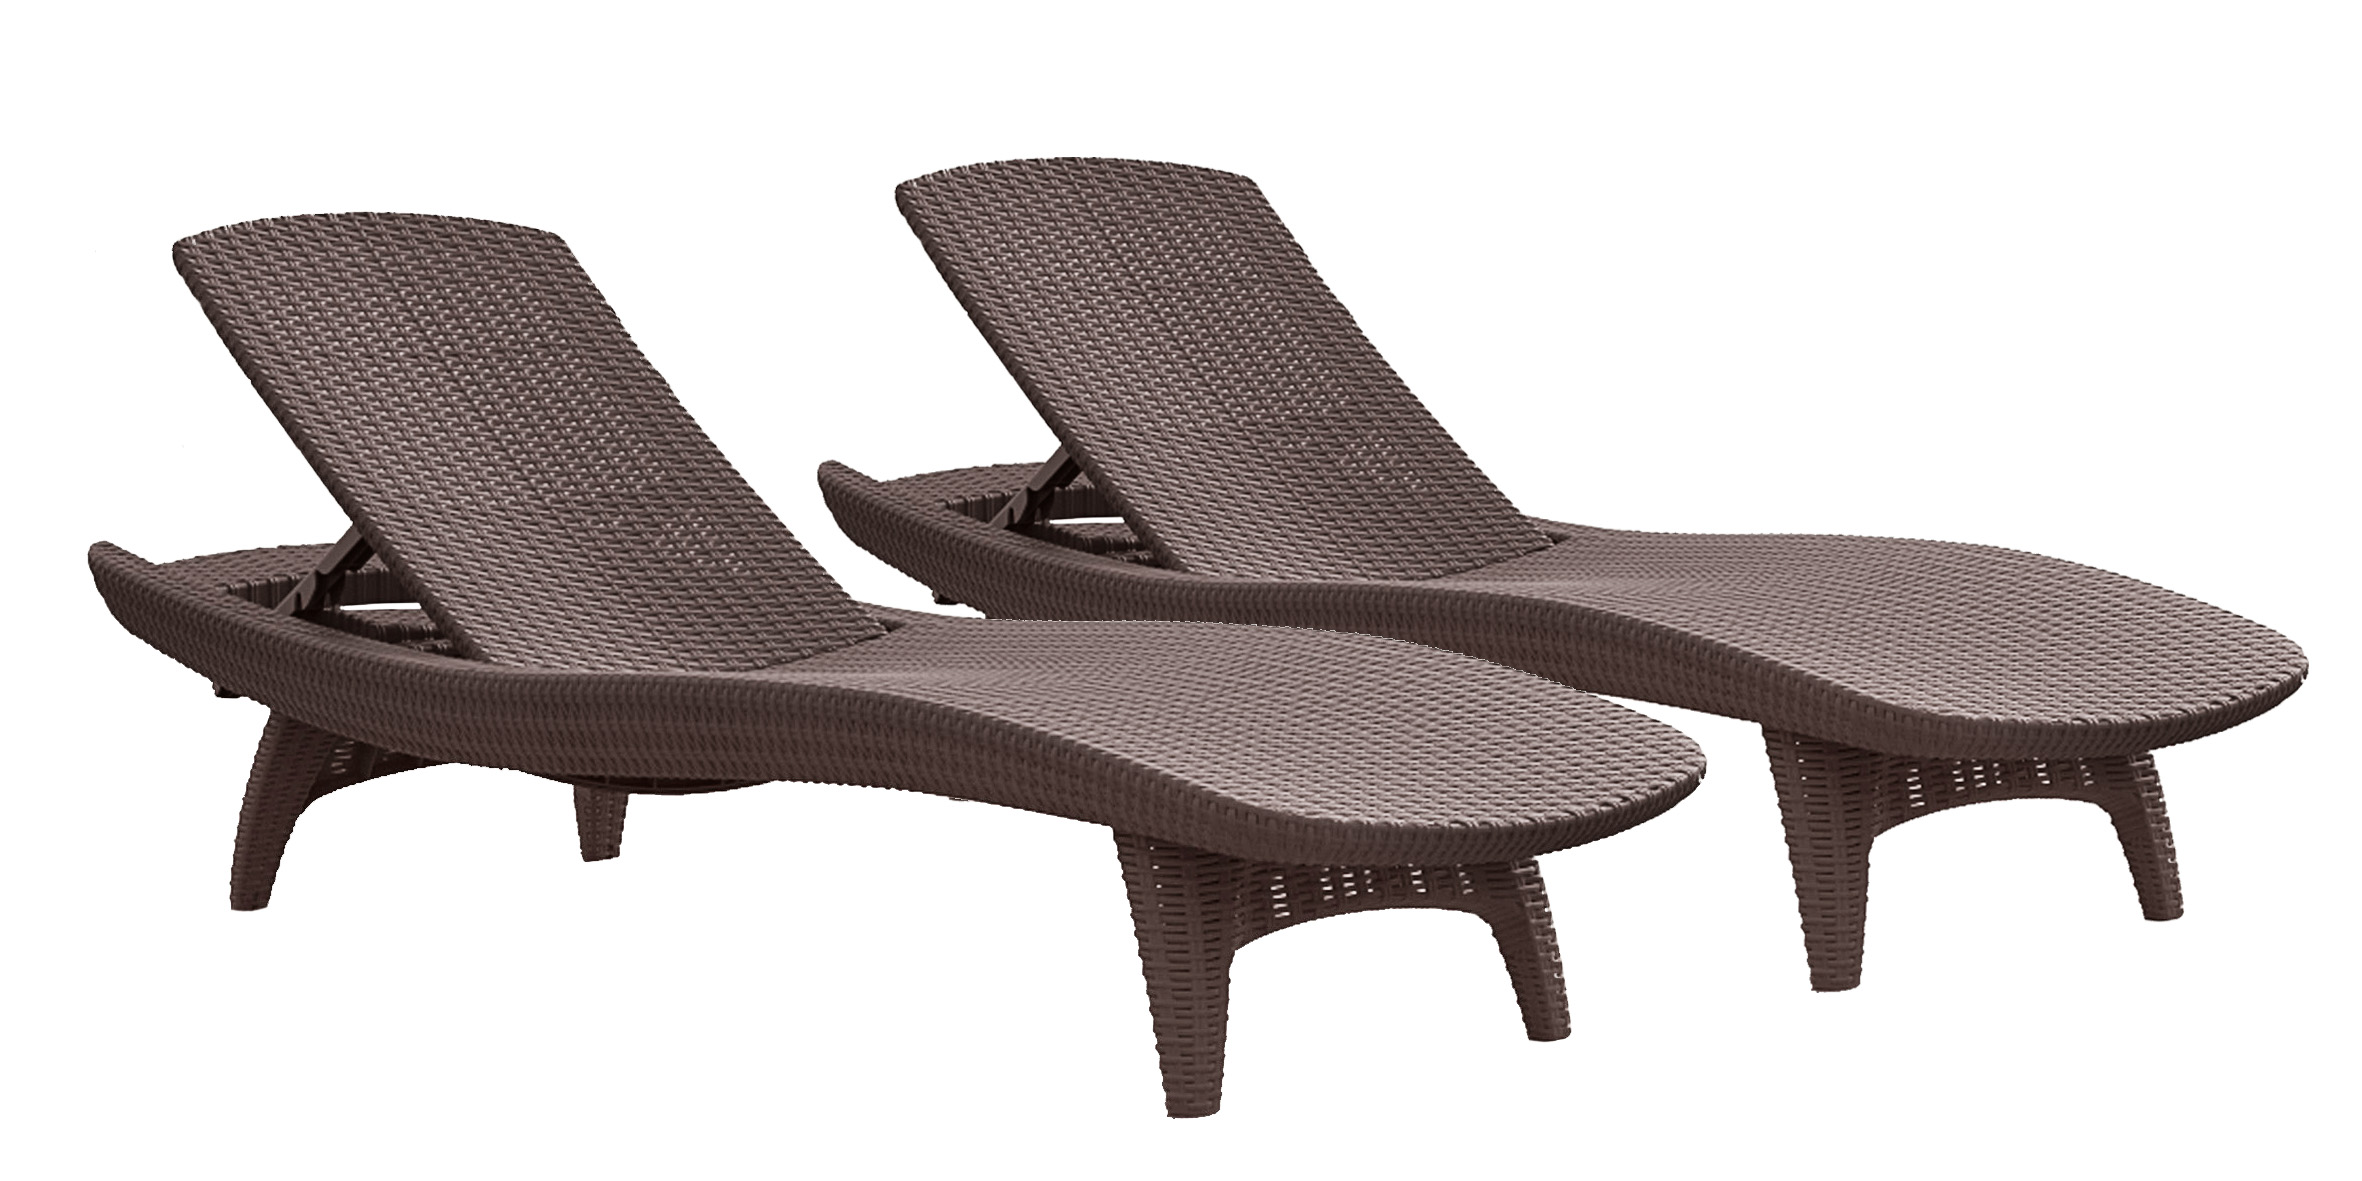 Keter 2-Pack All-weather Adjustable Outdoor Patio Chaise Lounge Furniture, Brown